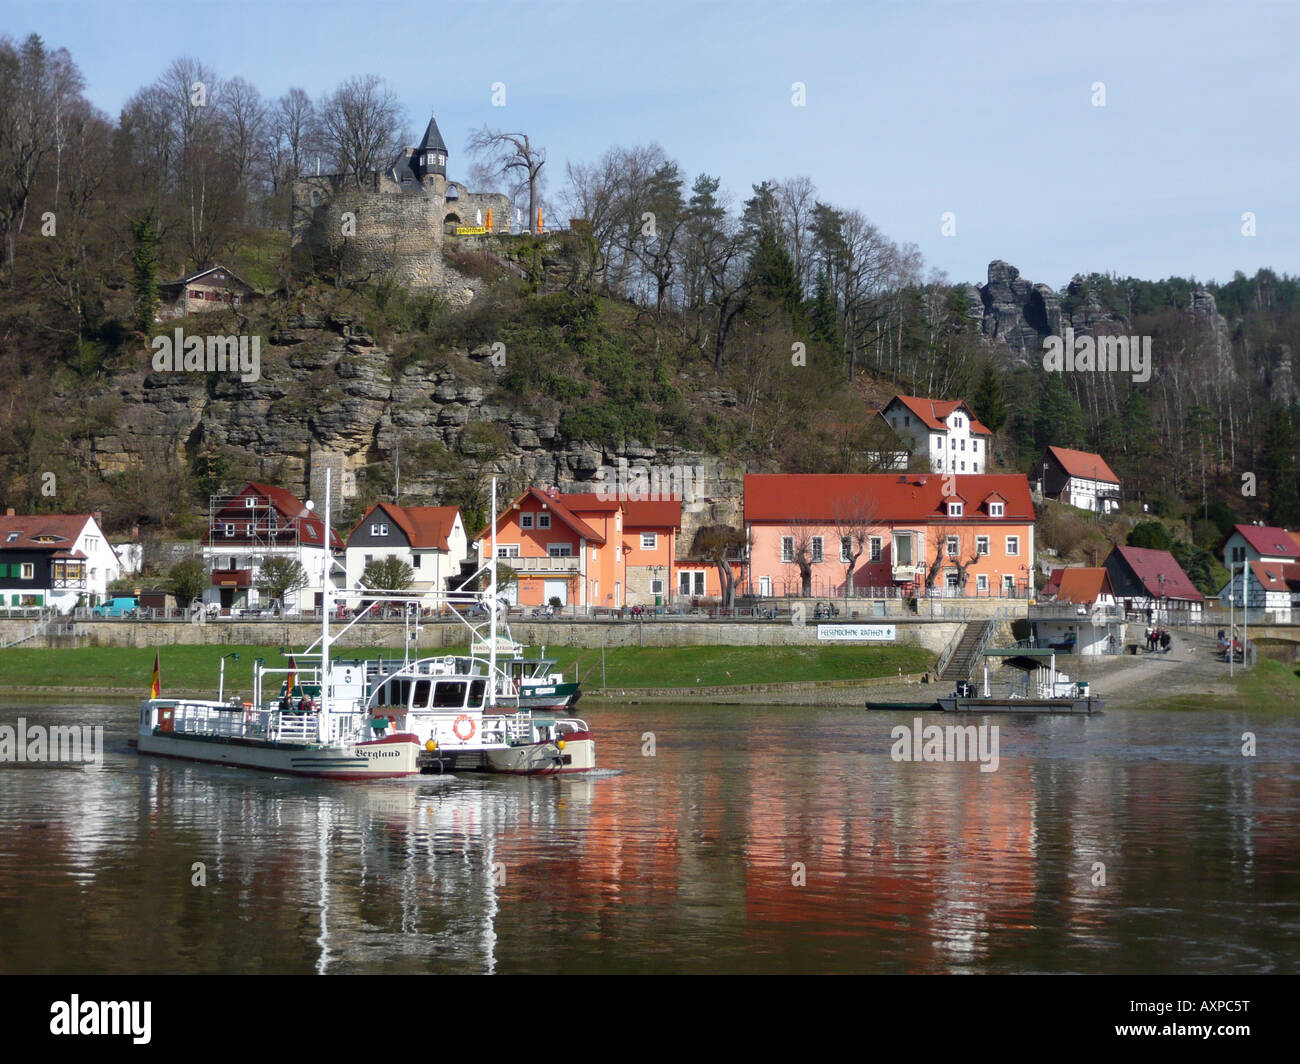 Ferry between the towns Rathen (Niederrathen) and Oberrathen on the river Elbe near the famous 'Bastei'. - Stock Image